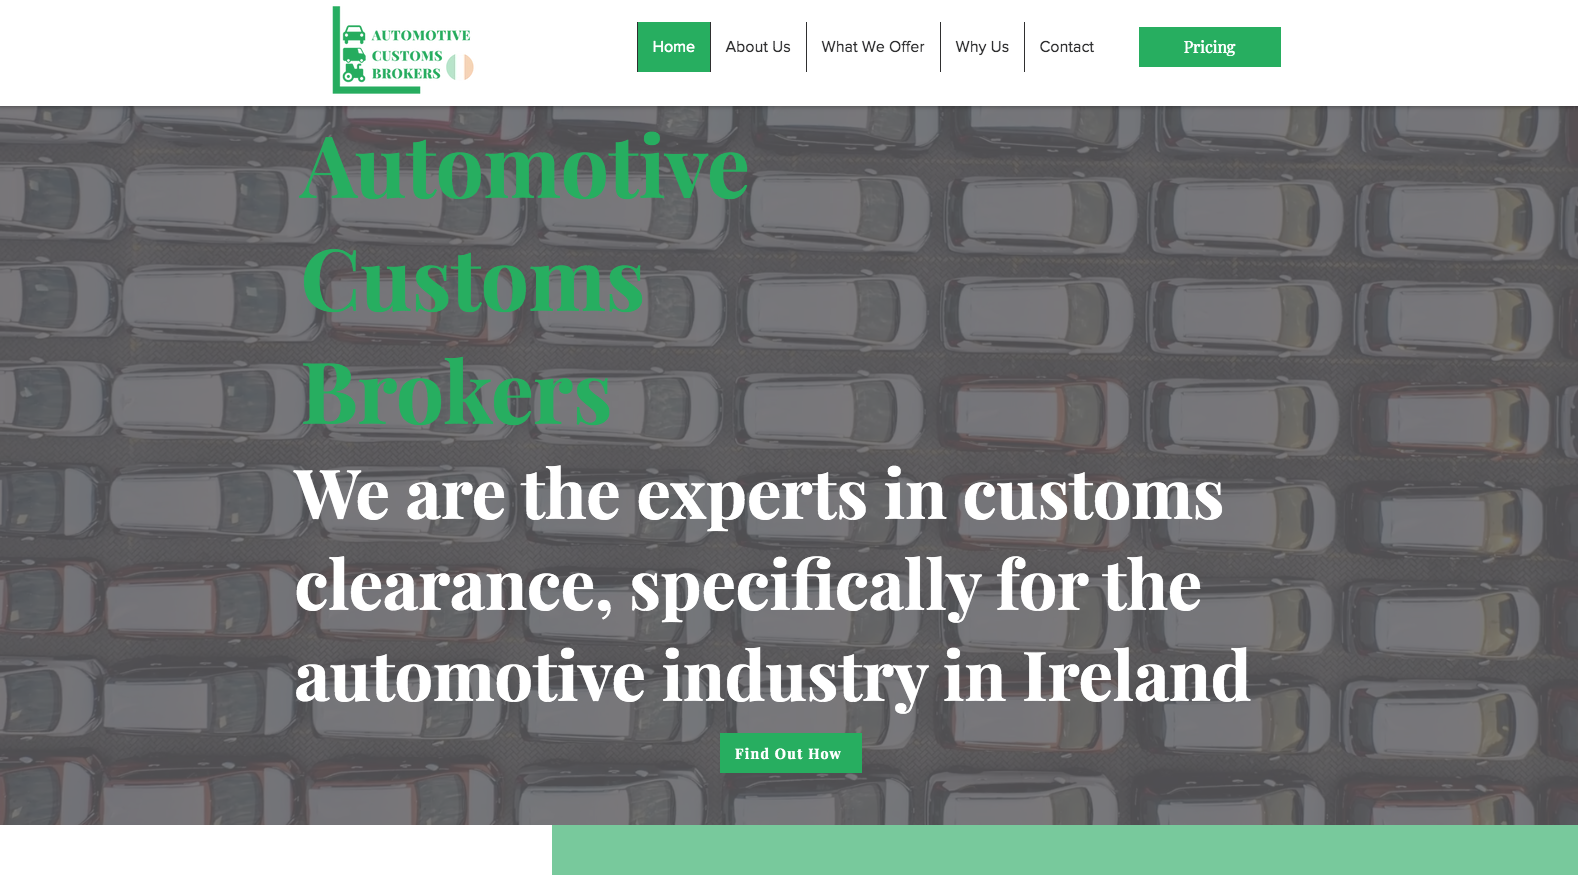 Automotive Customs Brokers has customs clearance covered